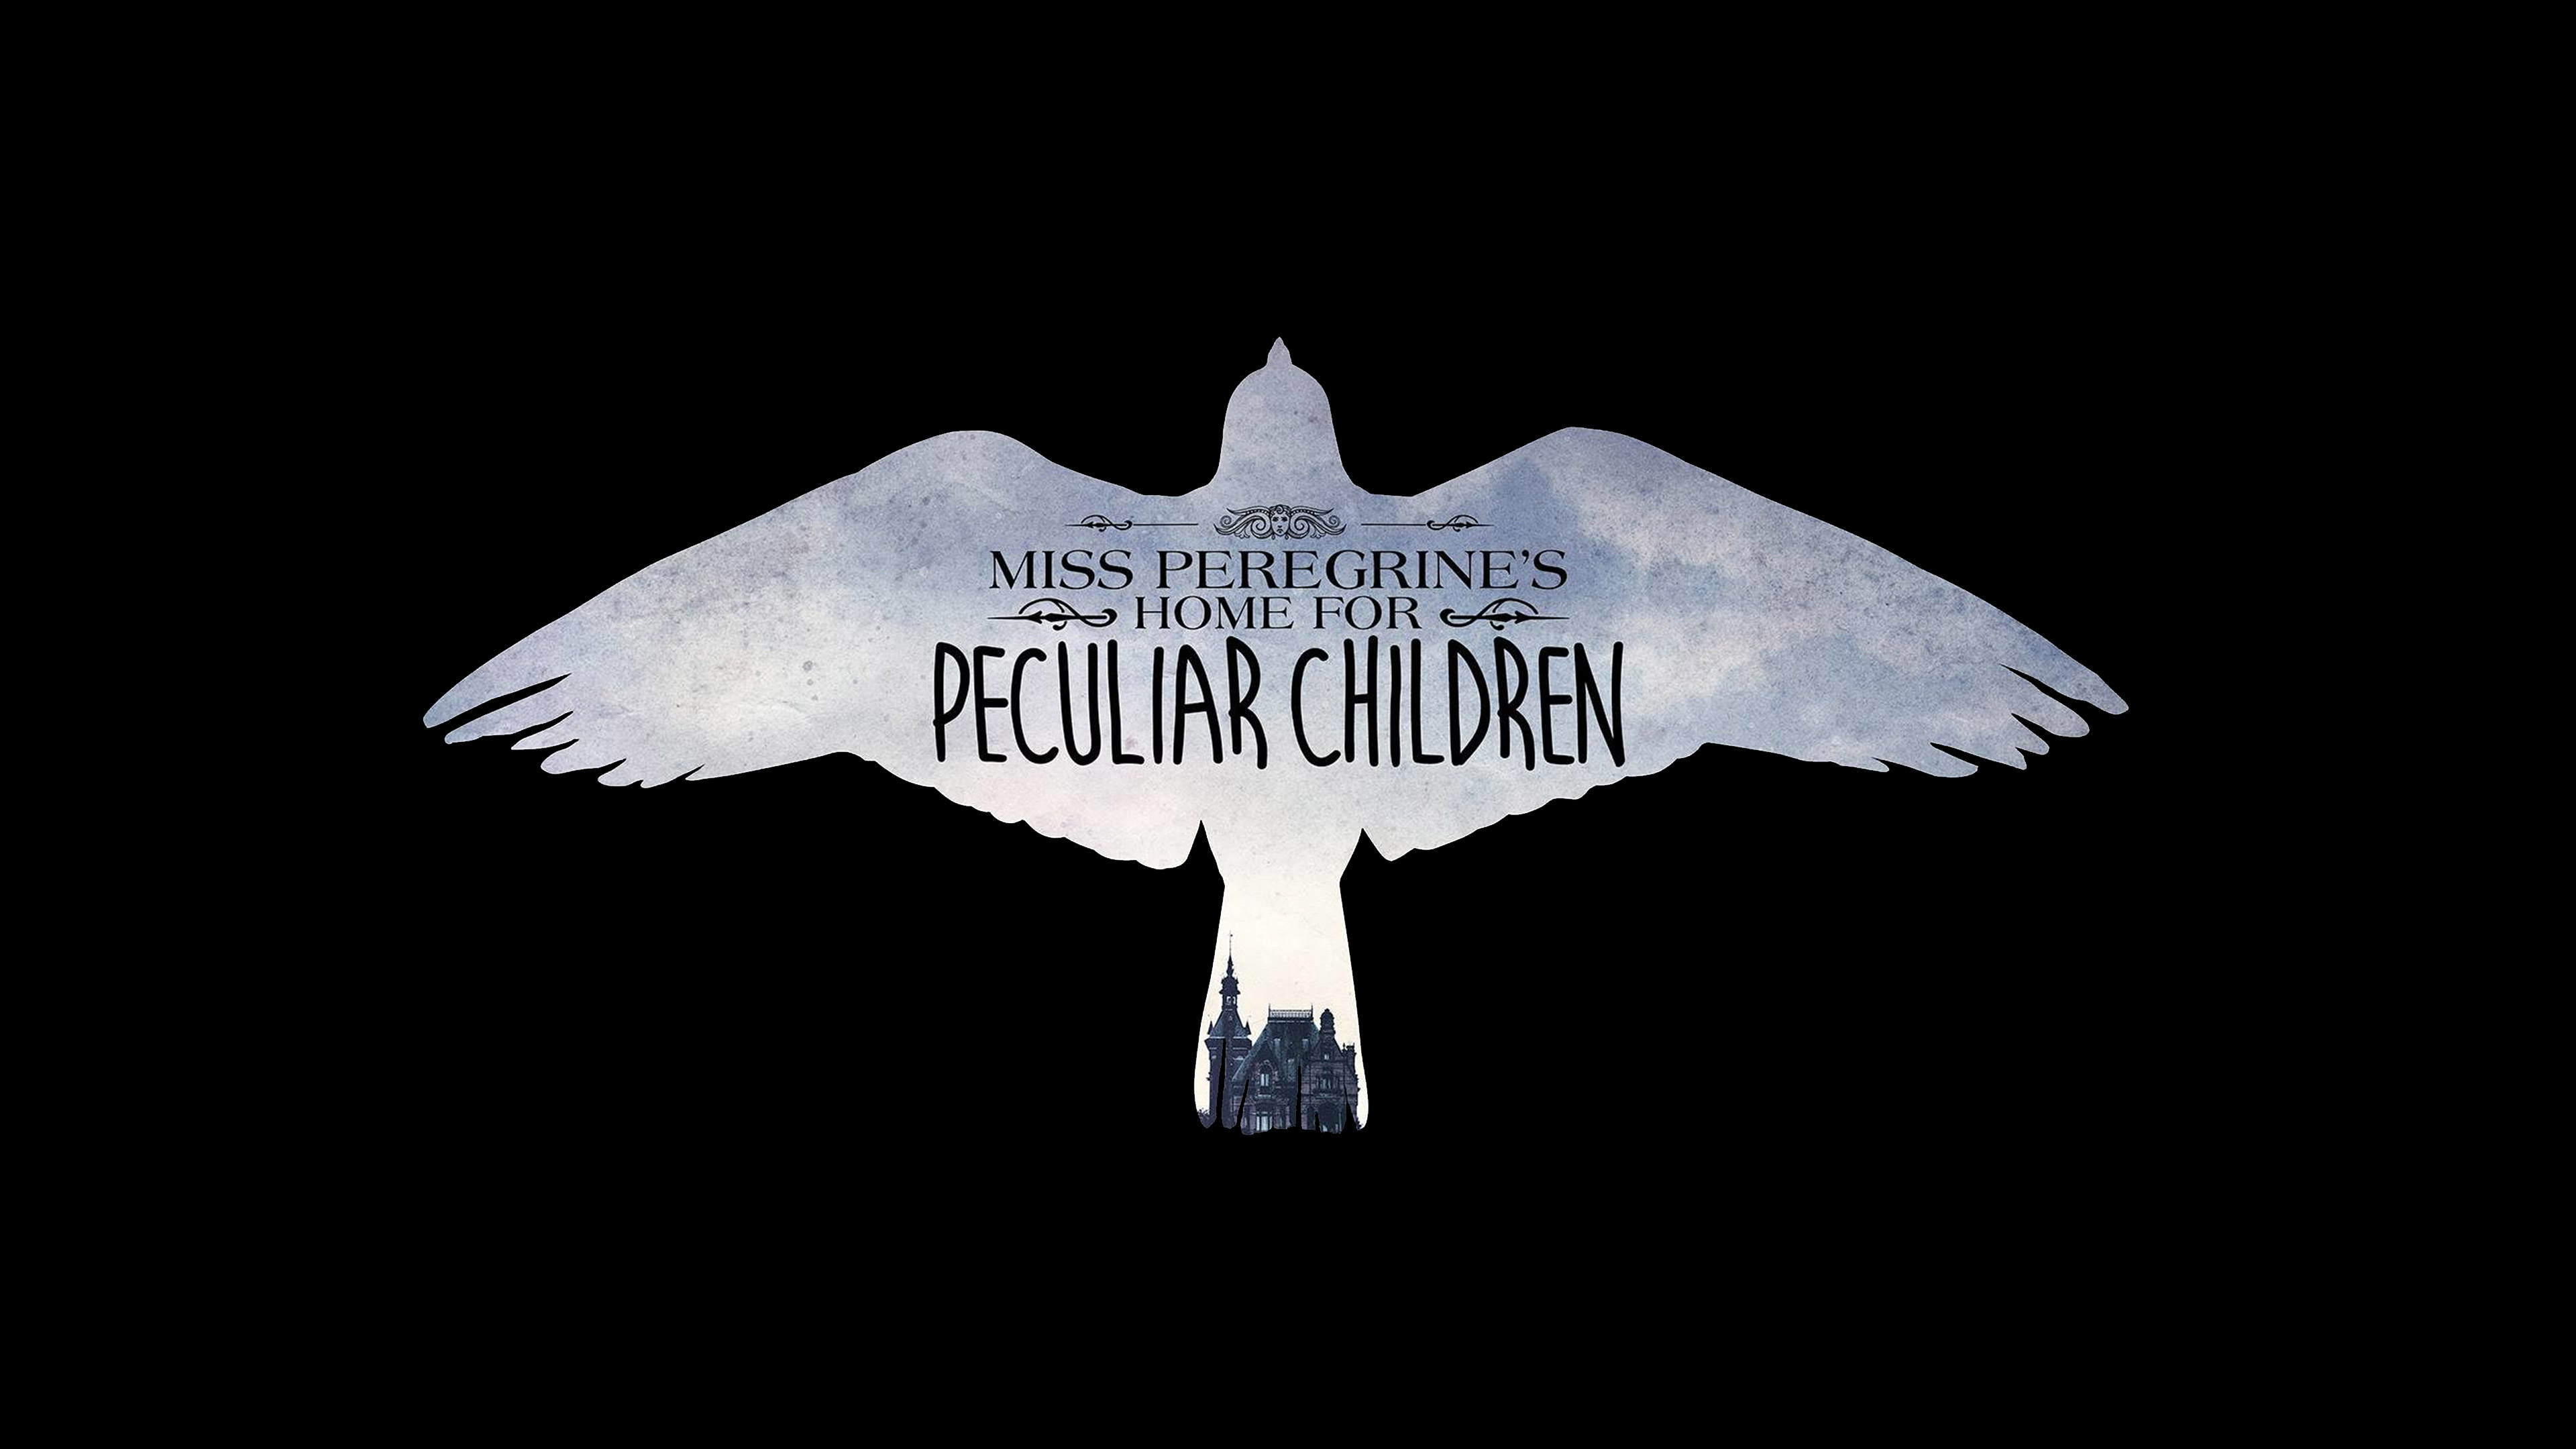 1366x768 Miss Peregrines Home For Peculiar Children Logo 1366x768